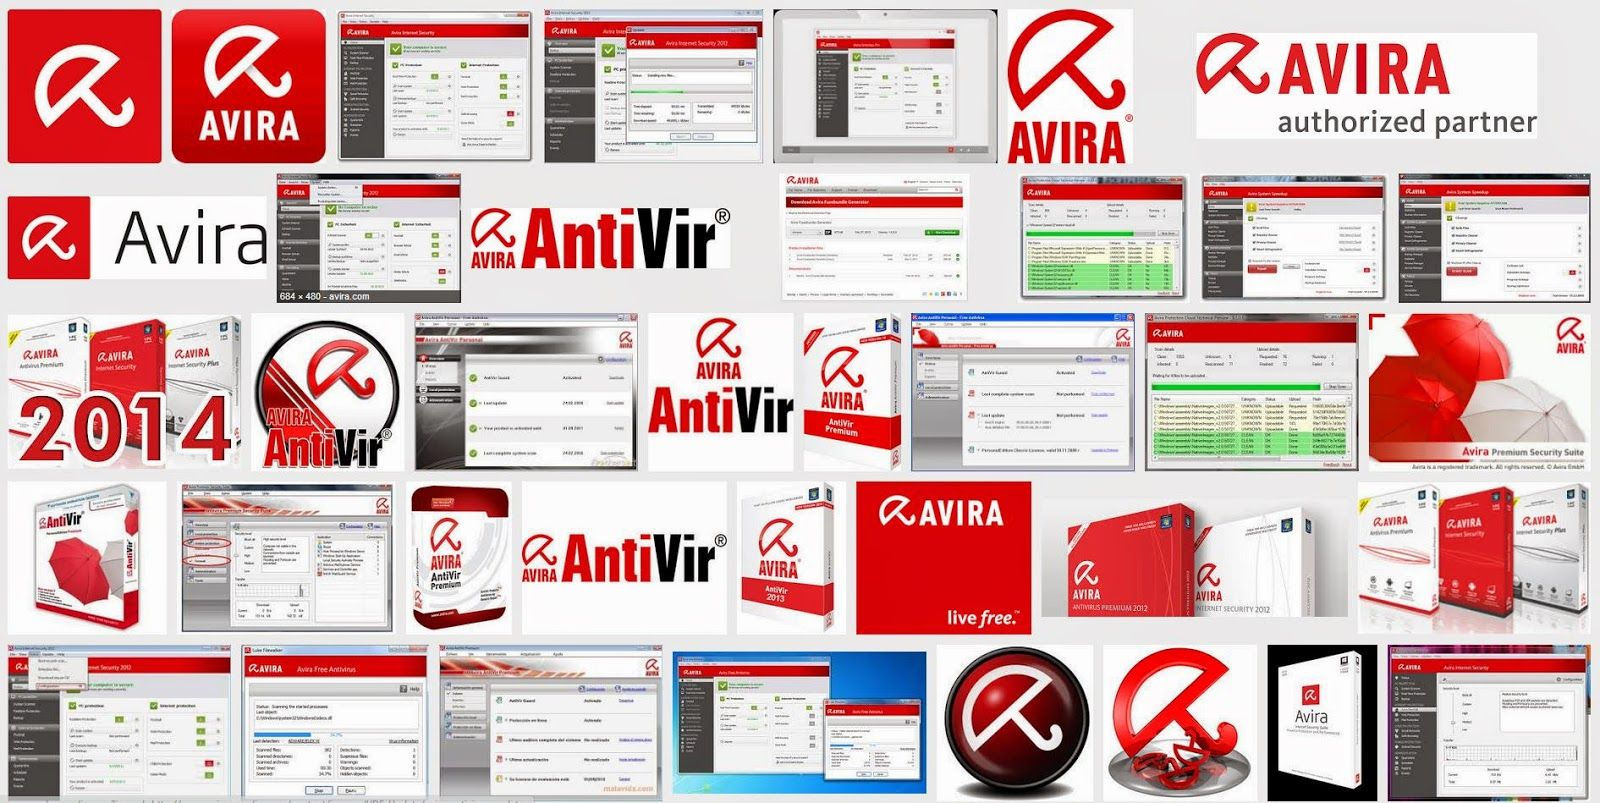 virus and antivirus The New Avira Antivirus 2015 German engi 1600x803